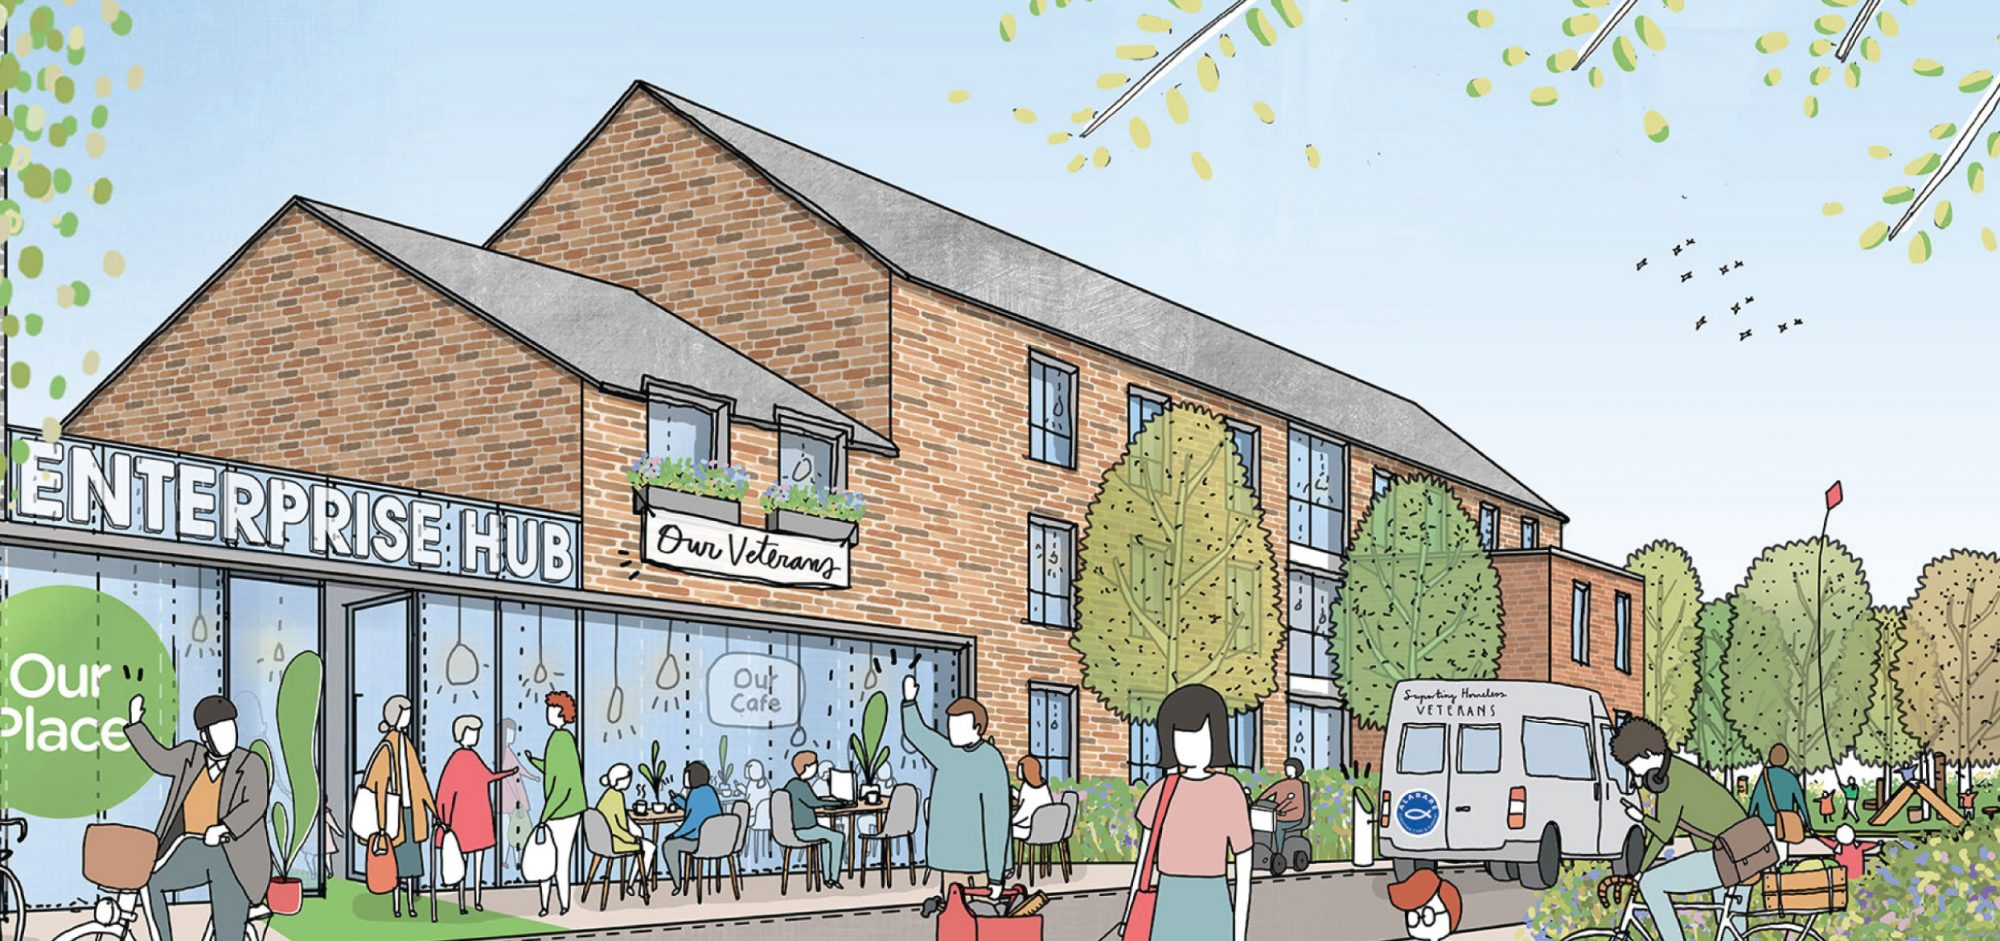 Final phase of community campus project at former Erskine Barracks site in Wilton given the go-ahead